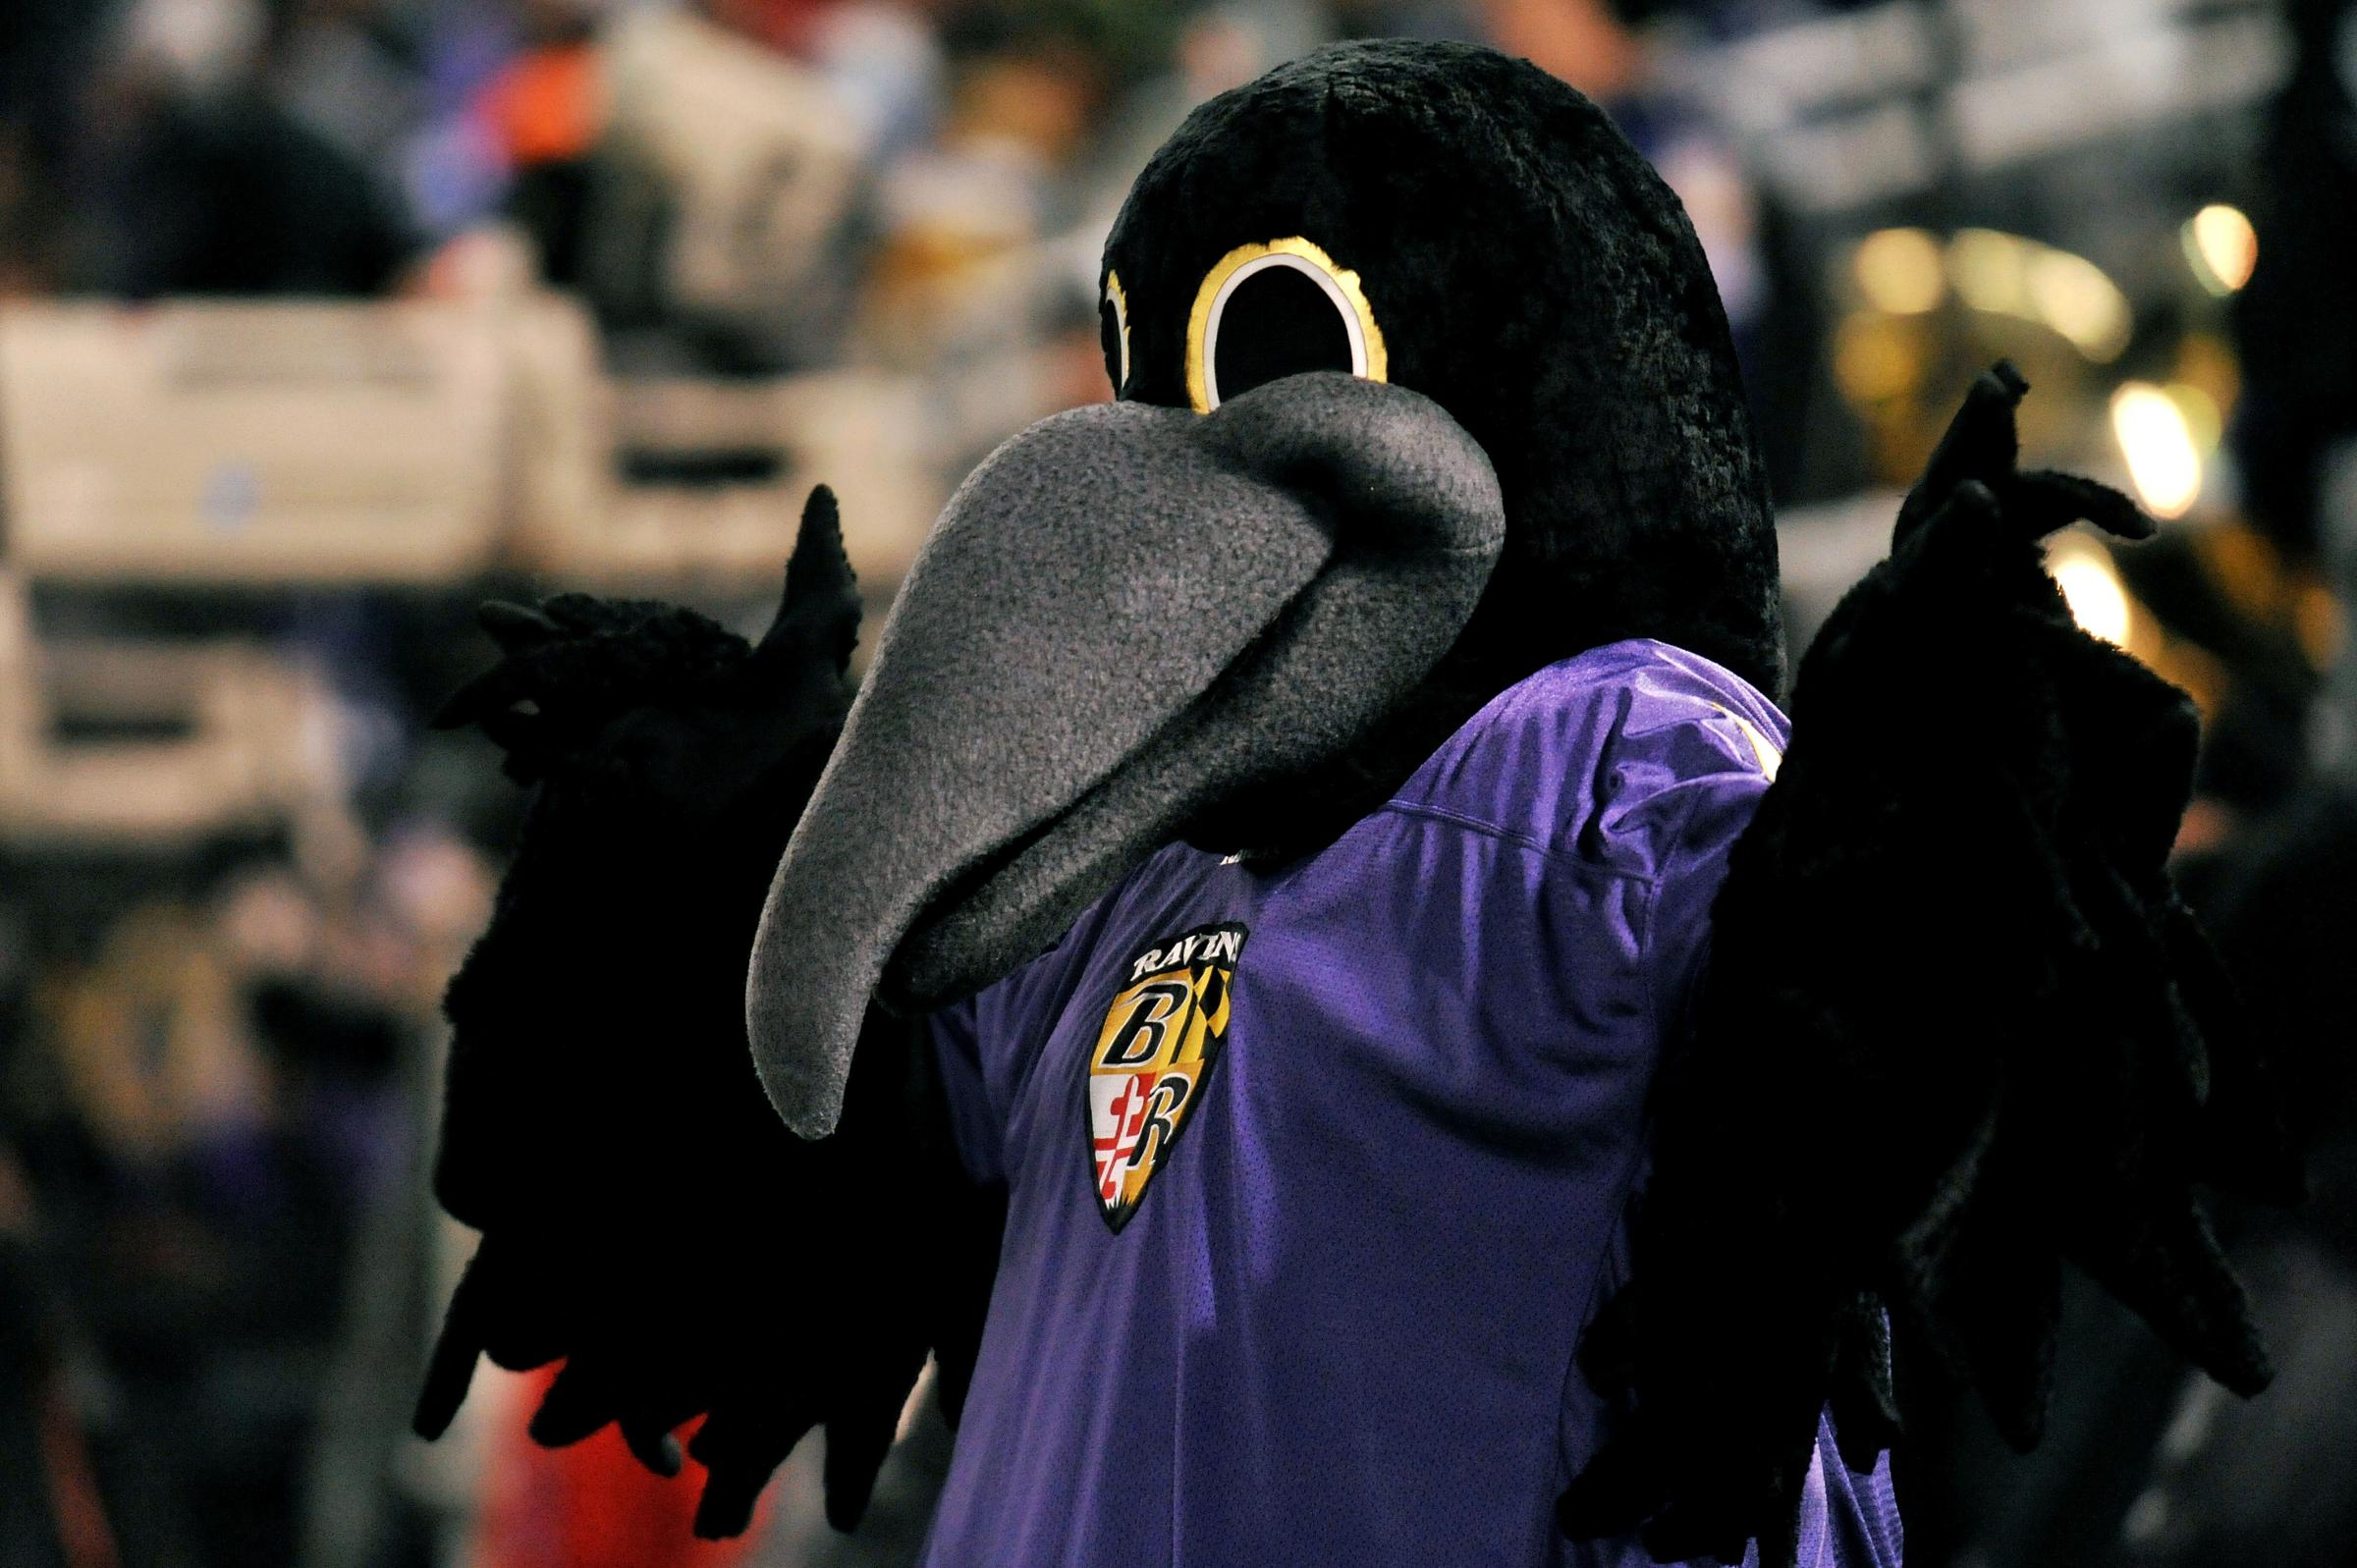 What is the baltimore ravens mascot name - Poe The Mascot Of The Baltimore Ravens Cheers On The Team During The Game Against The Pittsburgh Steelers In December 2010